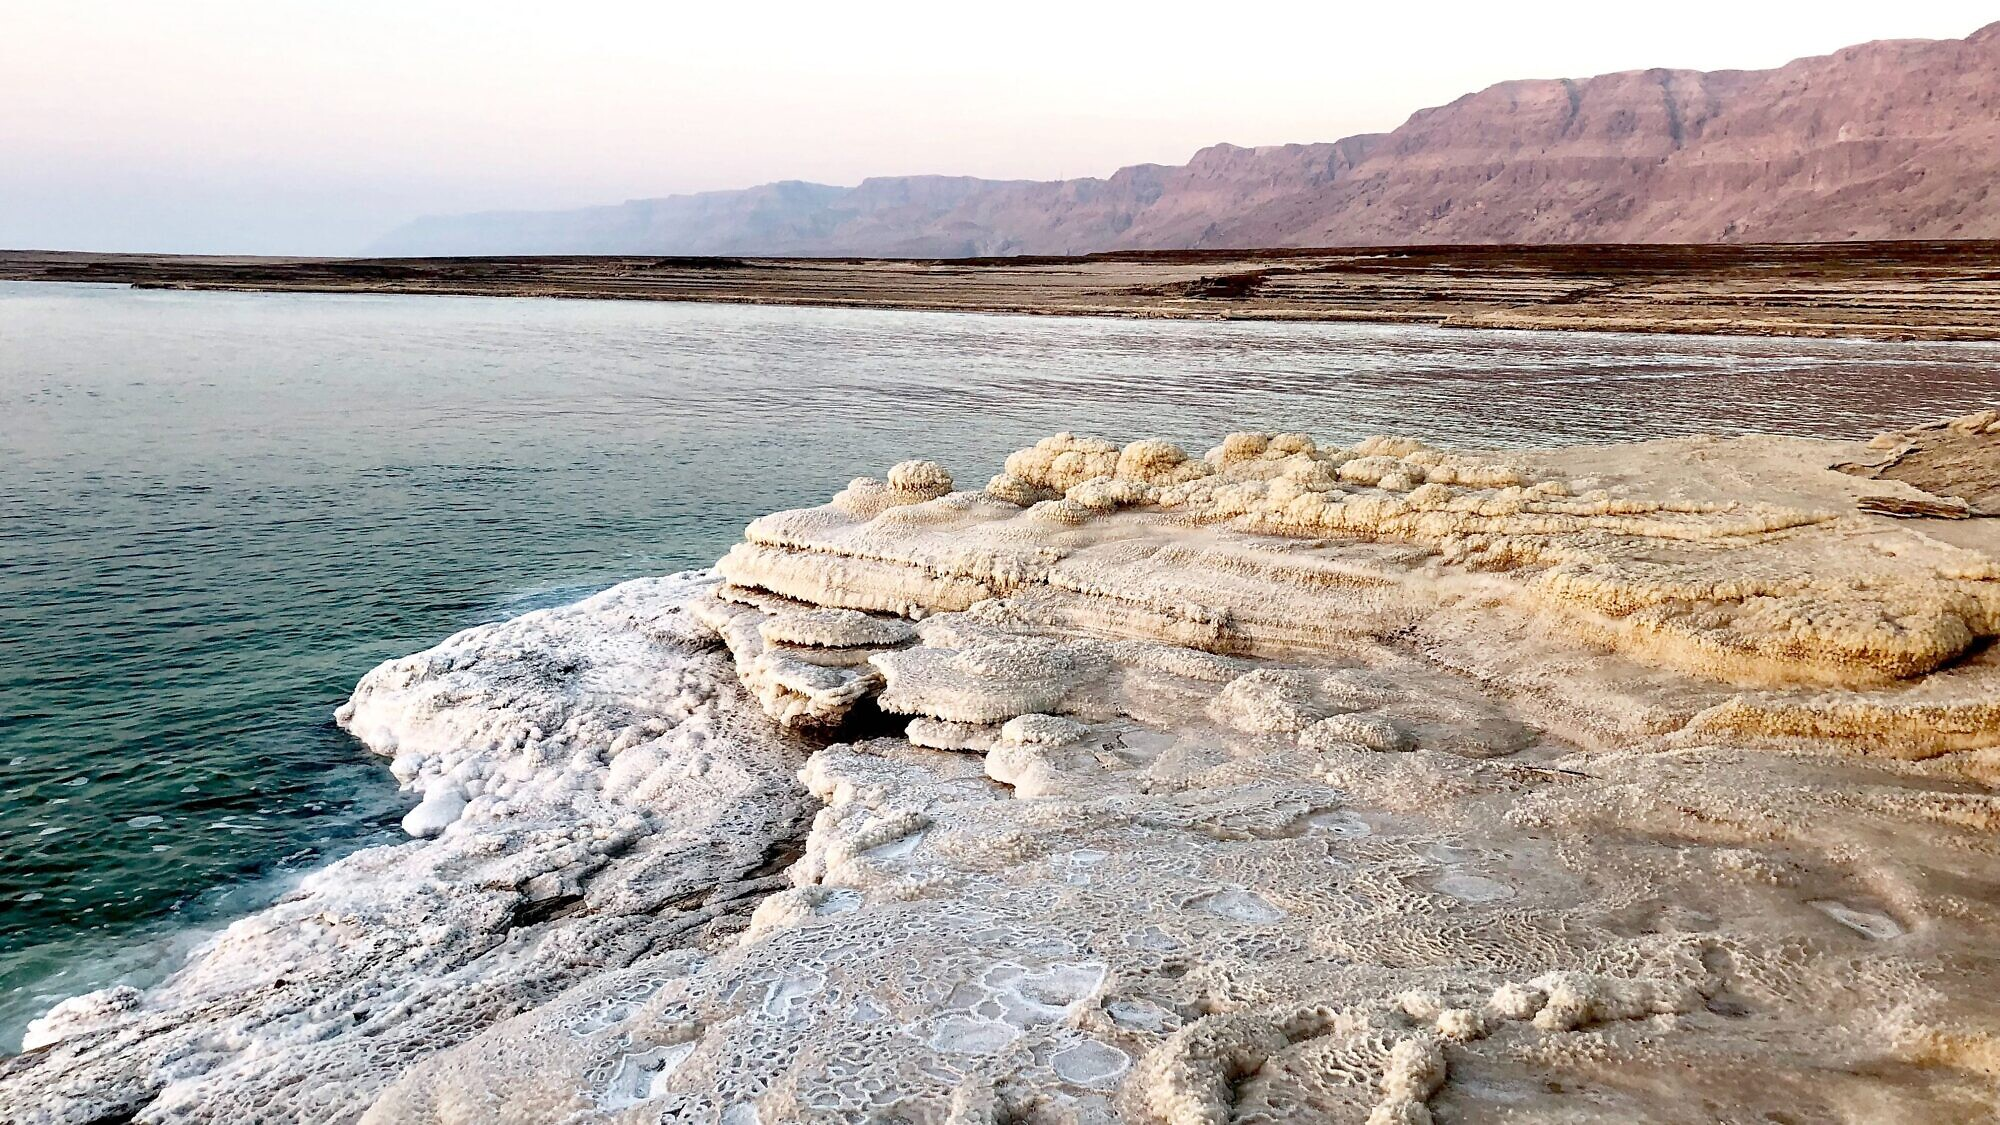 A view of the Dead Sea. Although it has been nearly 20 years with no new hotels built in the area, the region enjoys the highest annual average occupancy of hotels in Israel. Photo by Eliana Rudee.